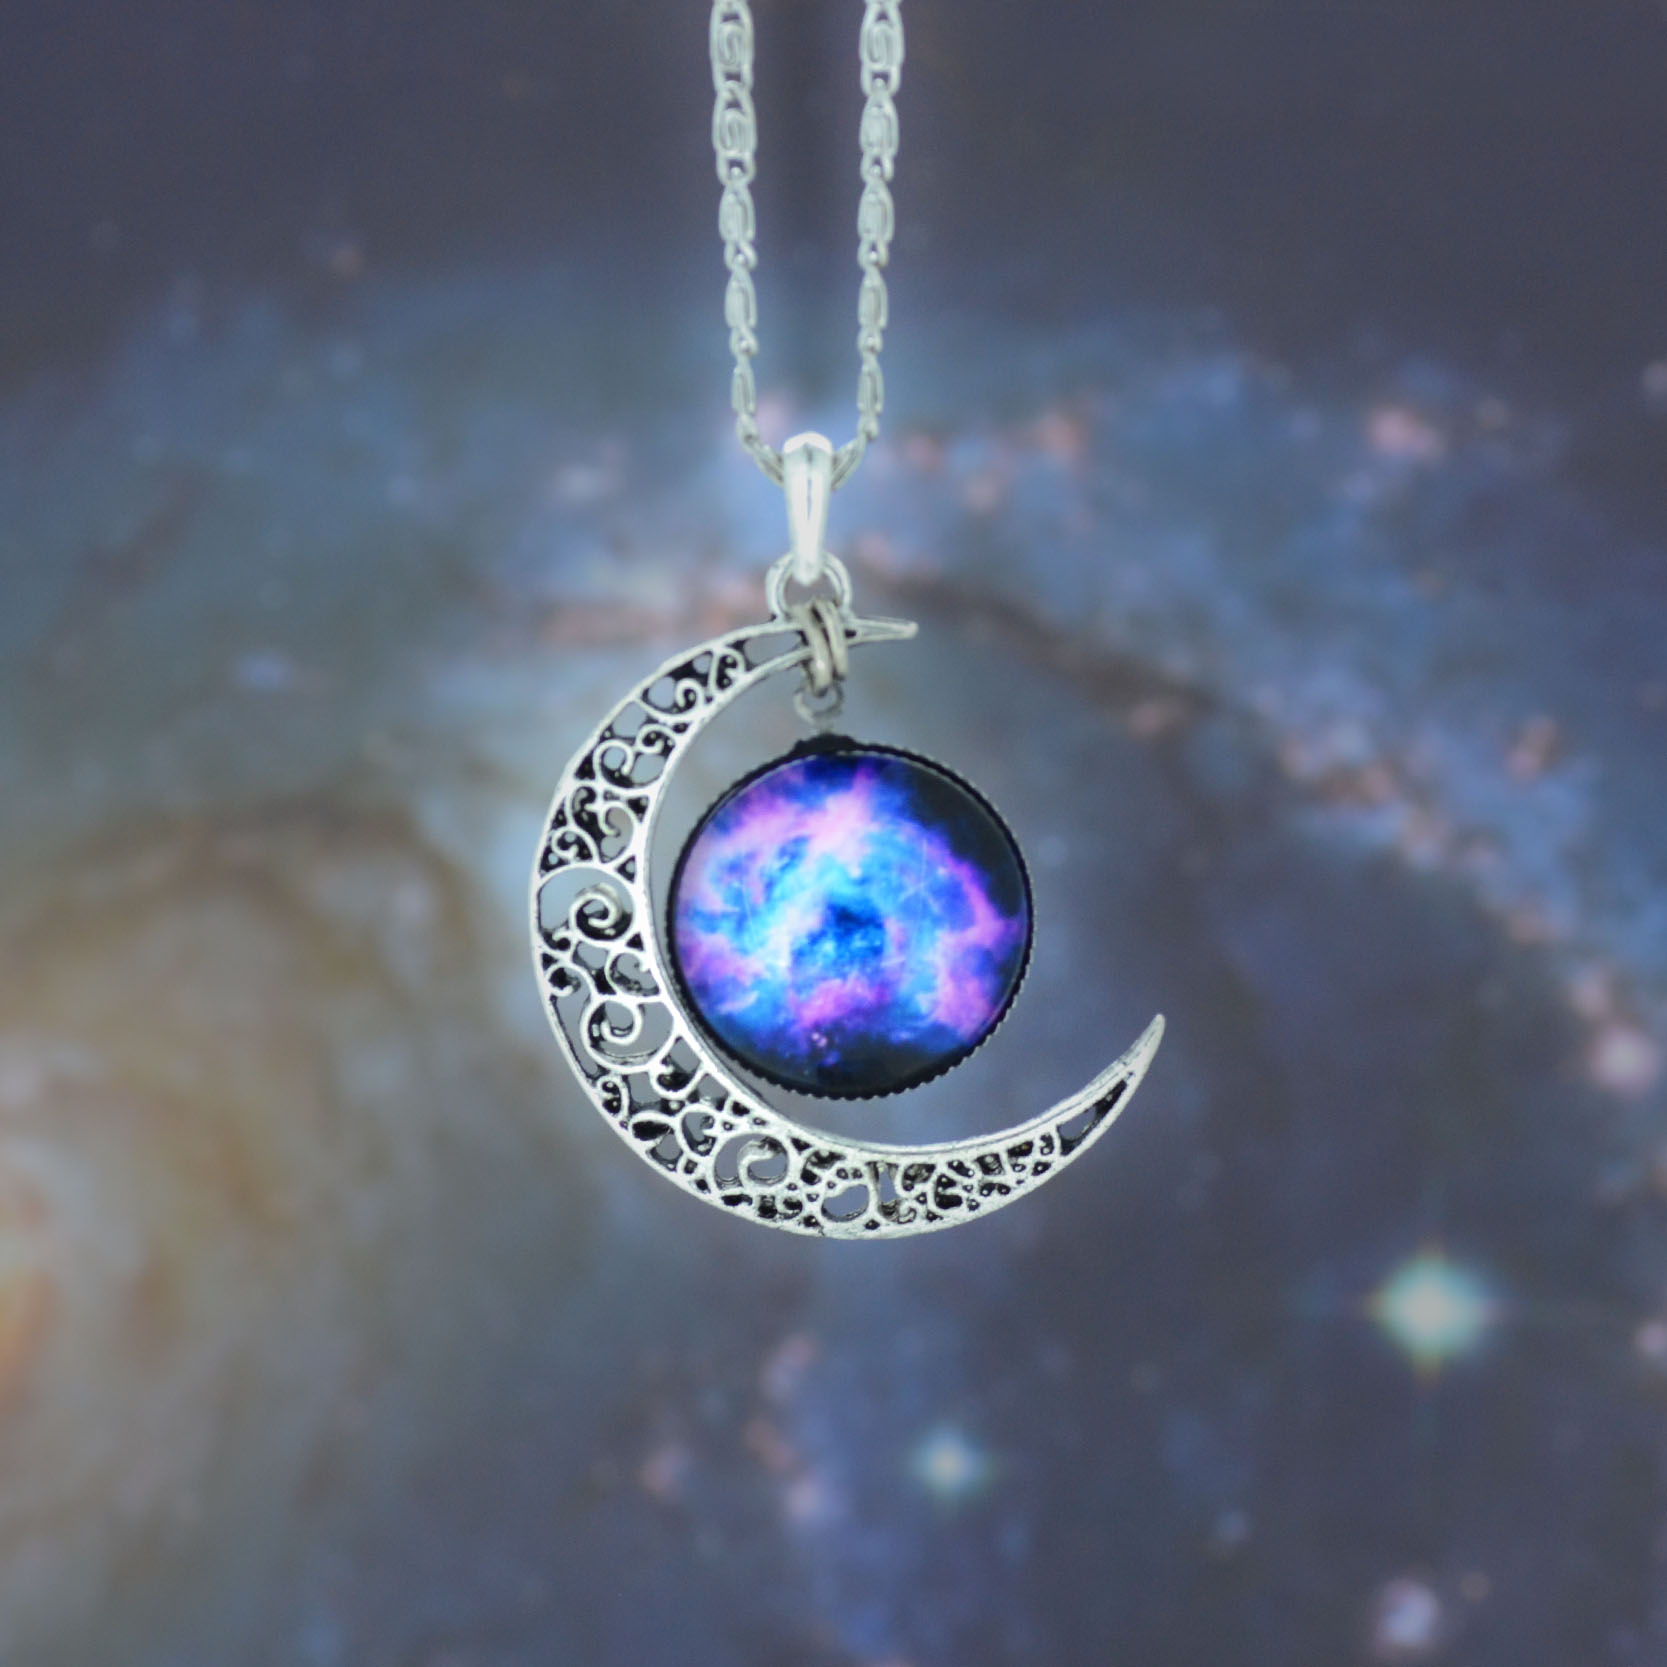 Galaxy necklacesilver moon pendant necklacemoon necklacecharm galaxy necklacesilver moon pendant necklacemoon necklacecharm necklacebib necklacehollow blue star galactic cosmic moon necklace ib846 aloadofball Gallery